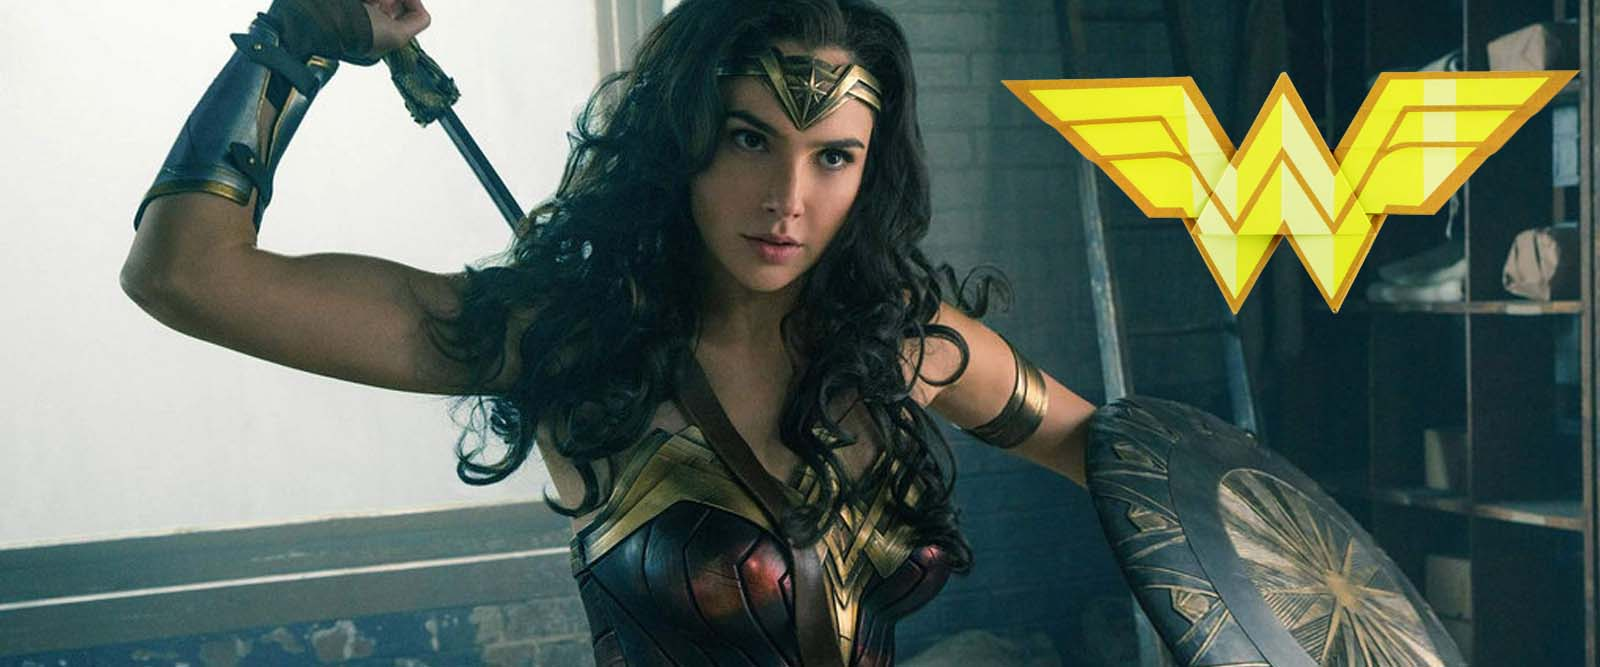 Wonder Woman movies of 2017